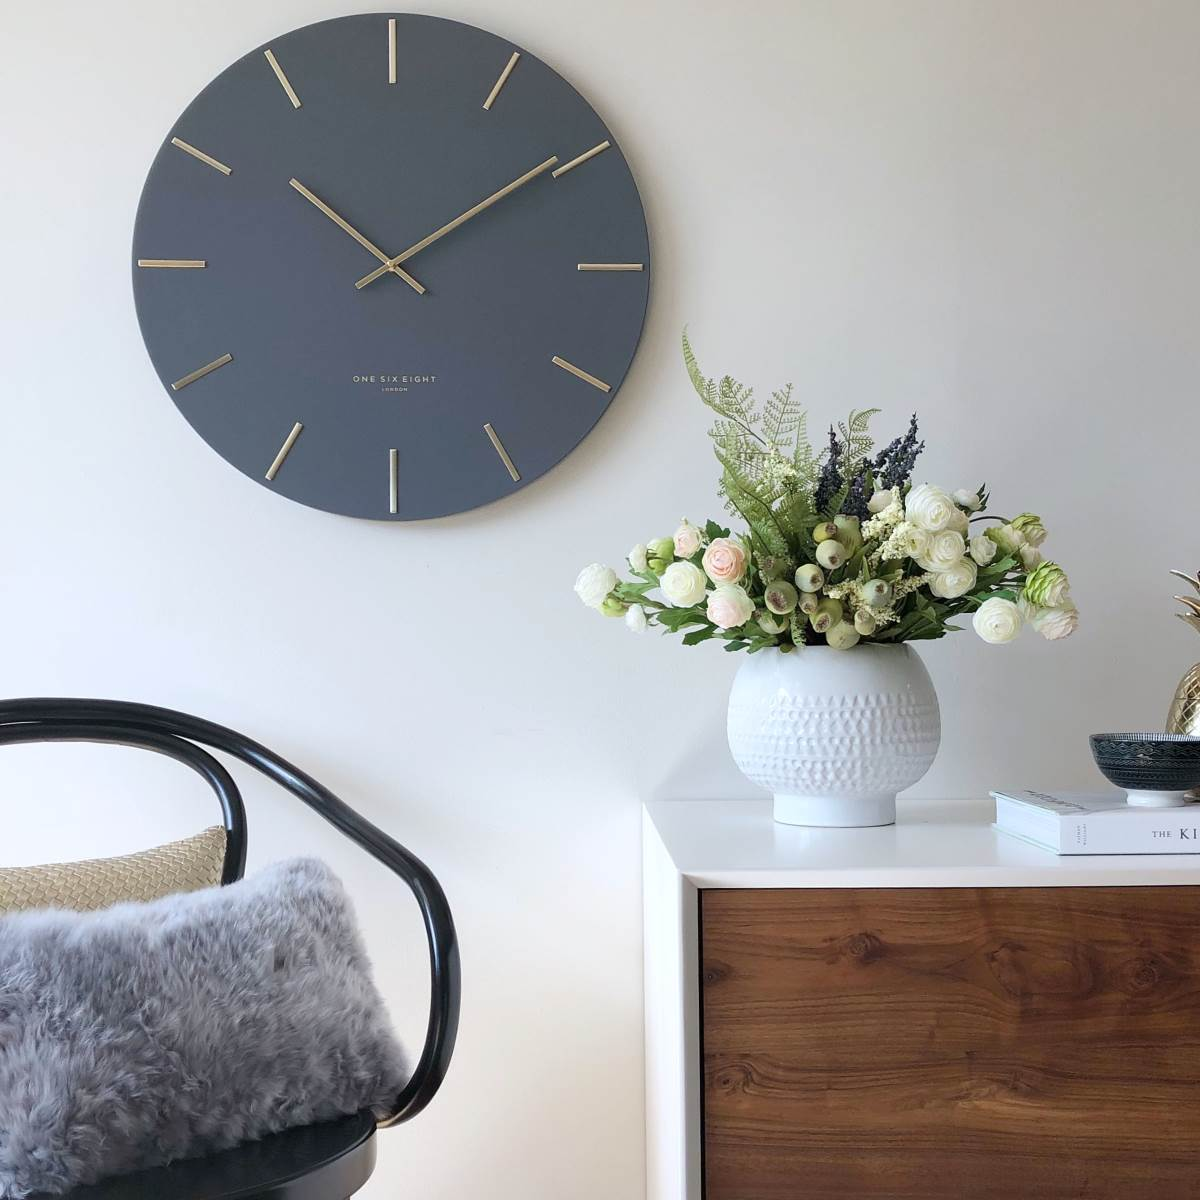 One Six Eight London Luca Wall Clock Charcoal Grey 30cm 22110 Lifestyle2